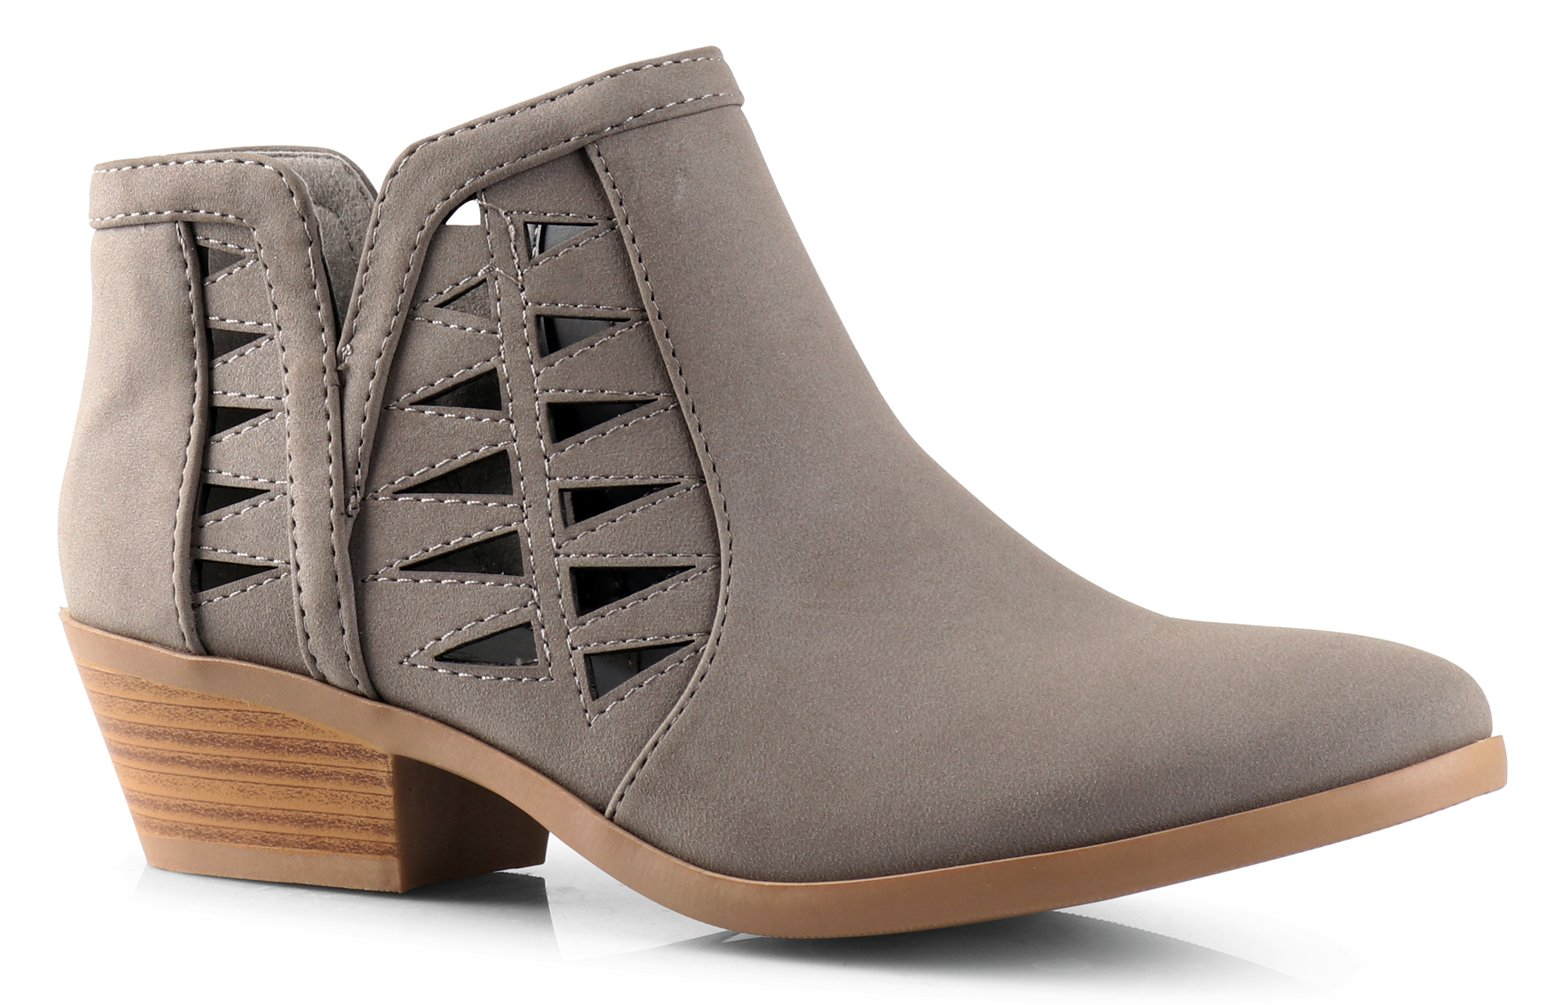 Soda Women's Perforated Cut Out Stacked Block Heel Ankle Booties (9 B(M) US, Gray Nubuck)